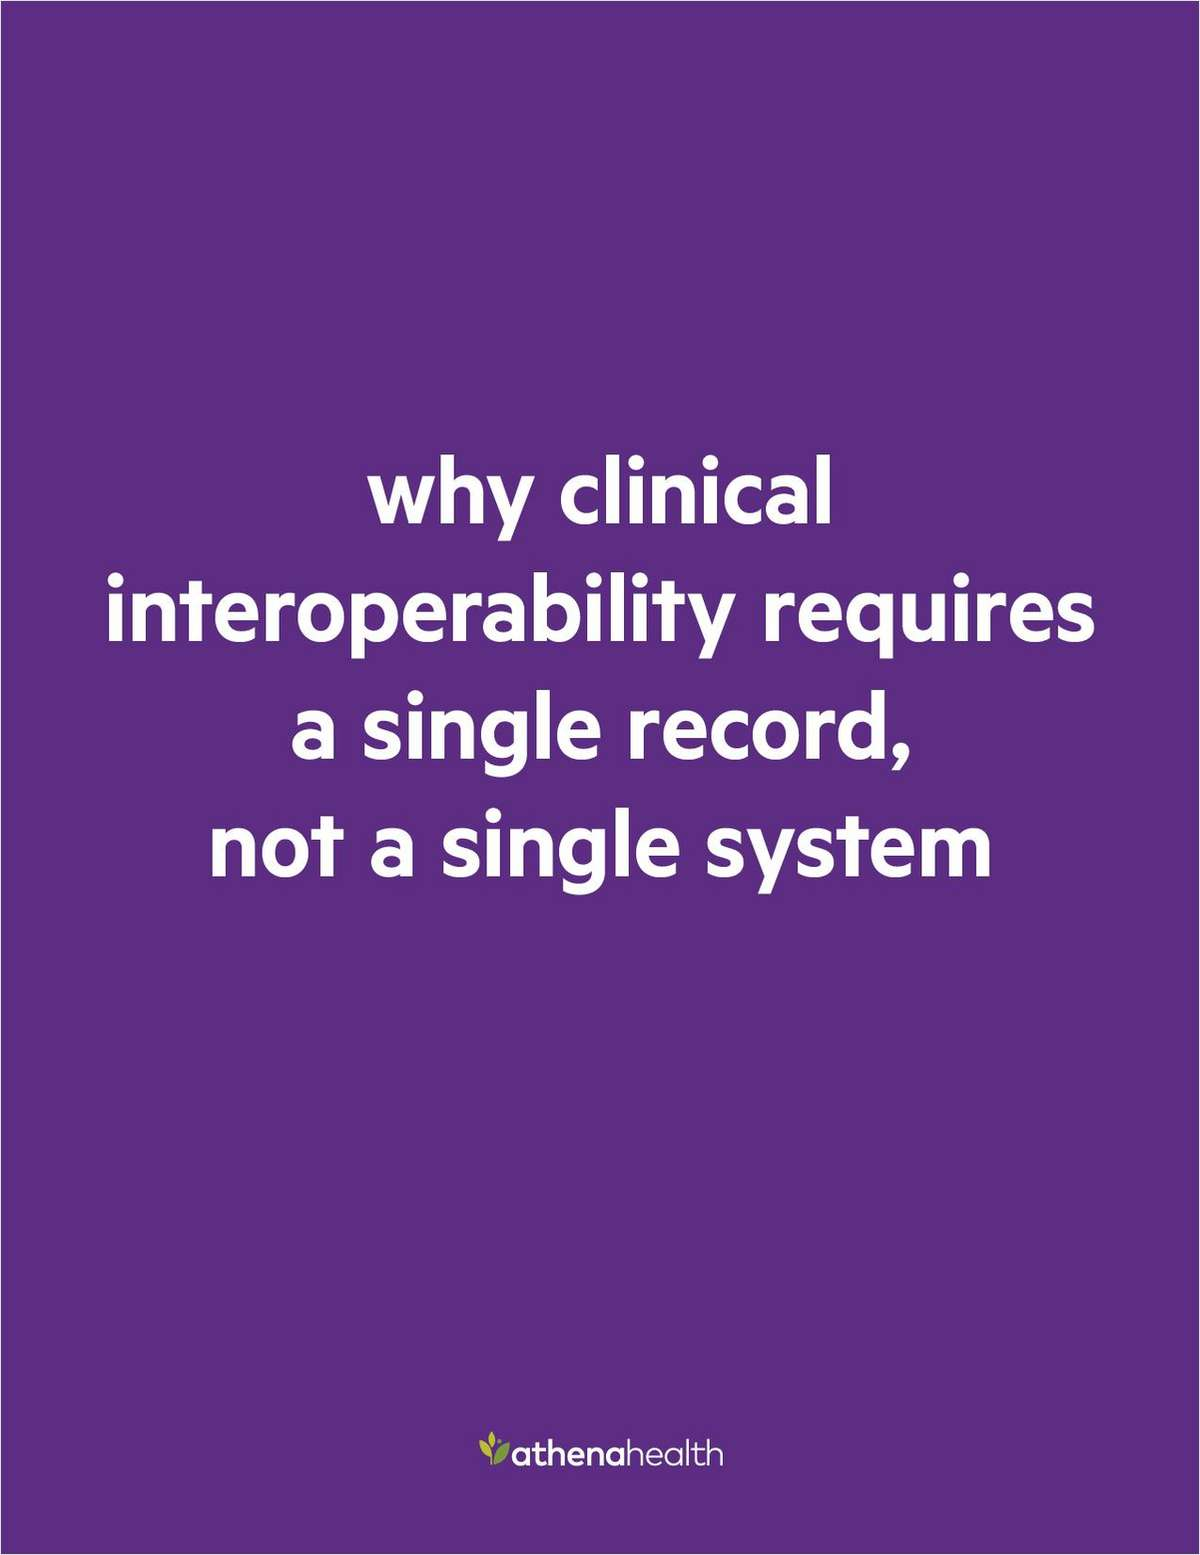 Whitepaper: Interoperability and universal patient records